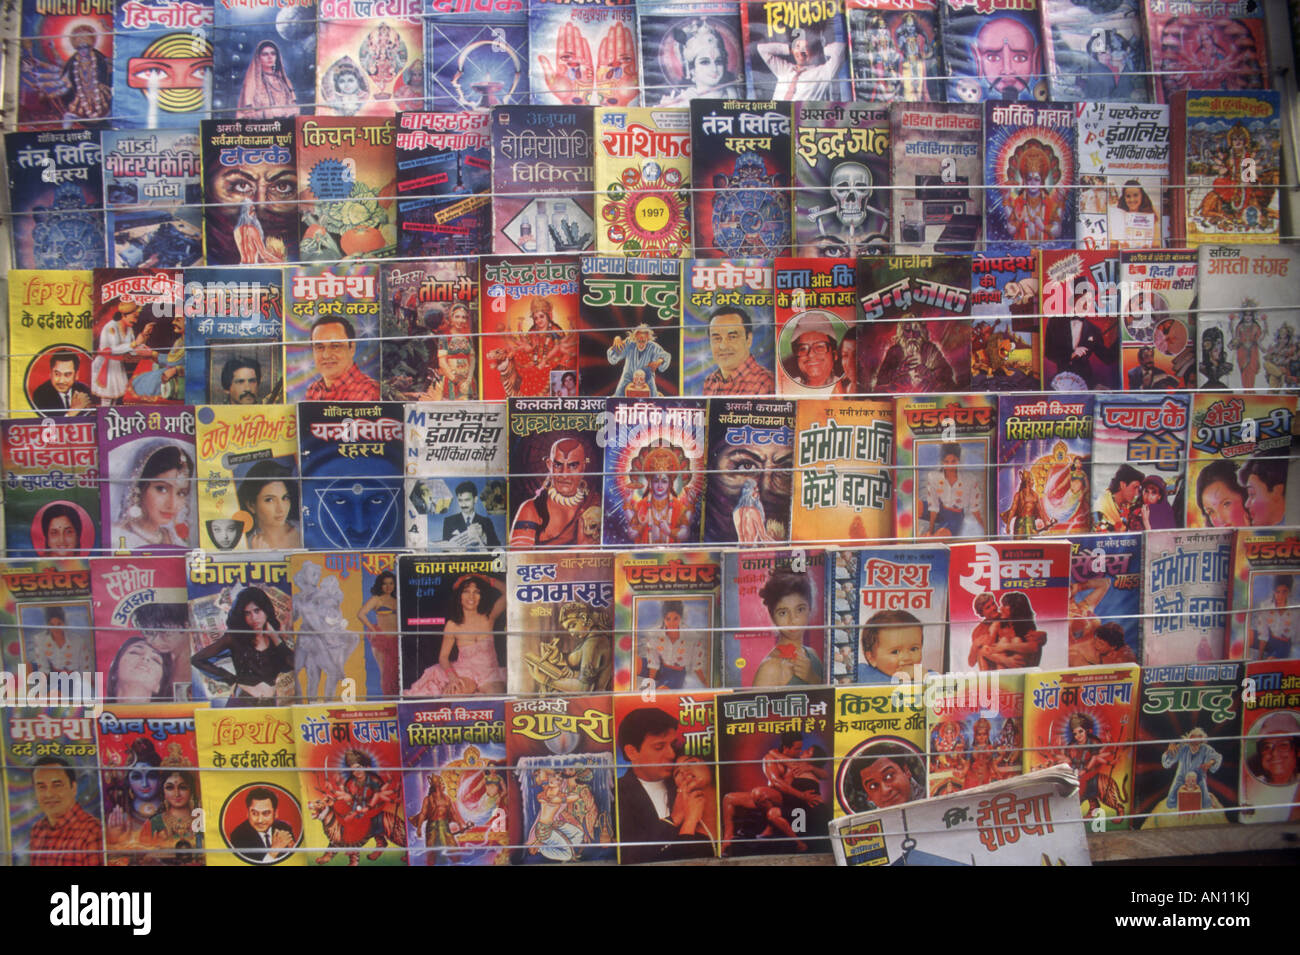 Close-up of comics displayed on road side comic stall. India - Stock Image